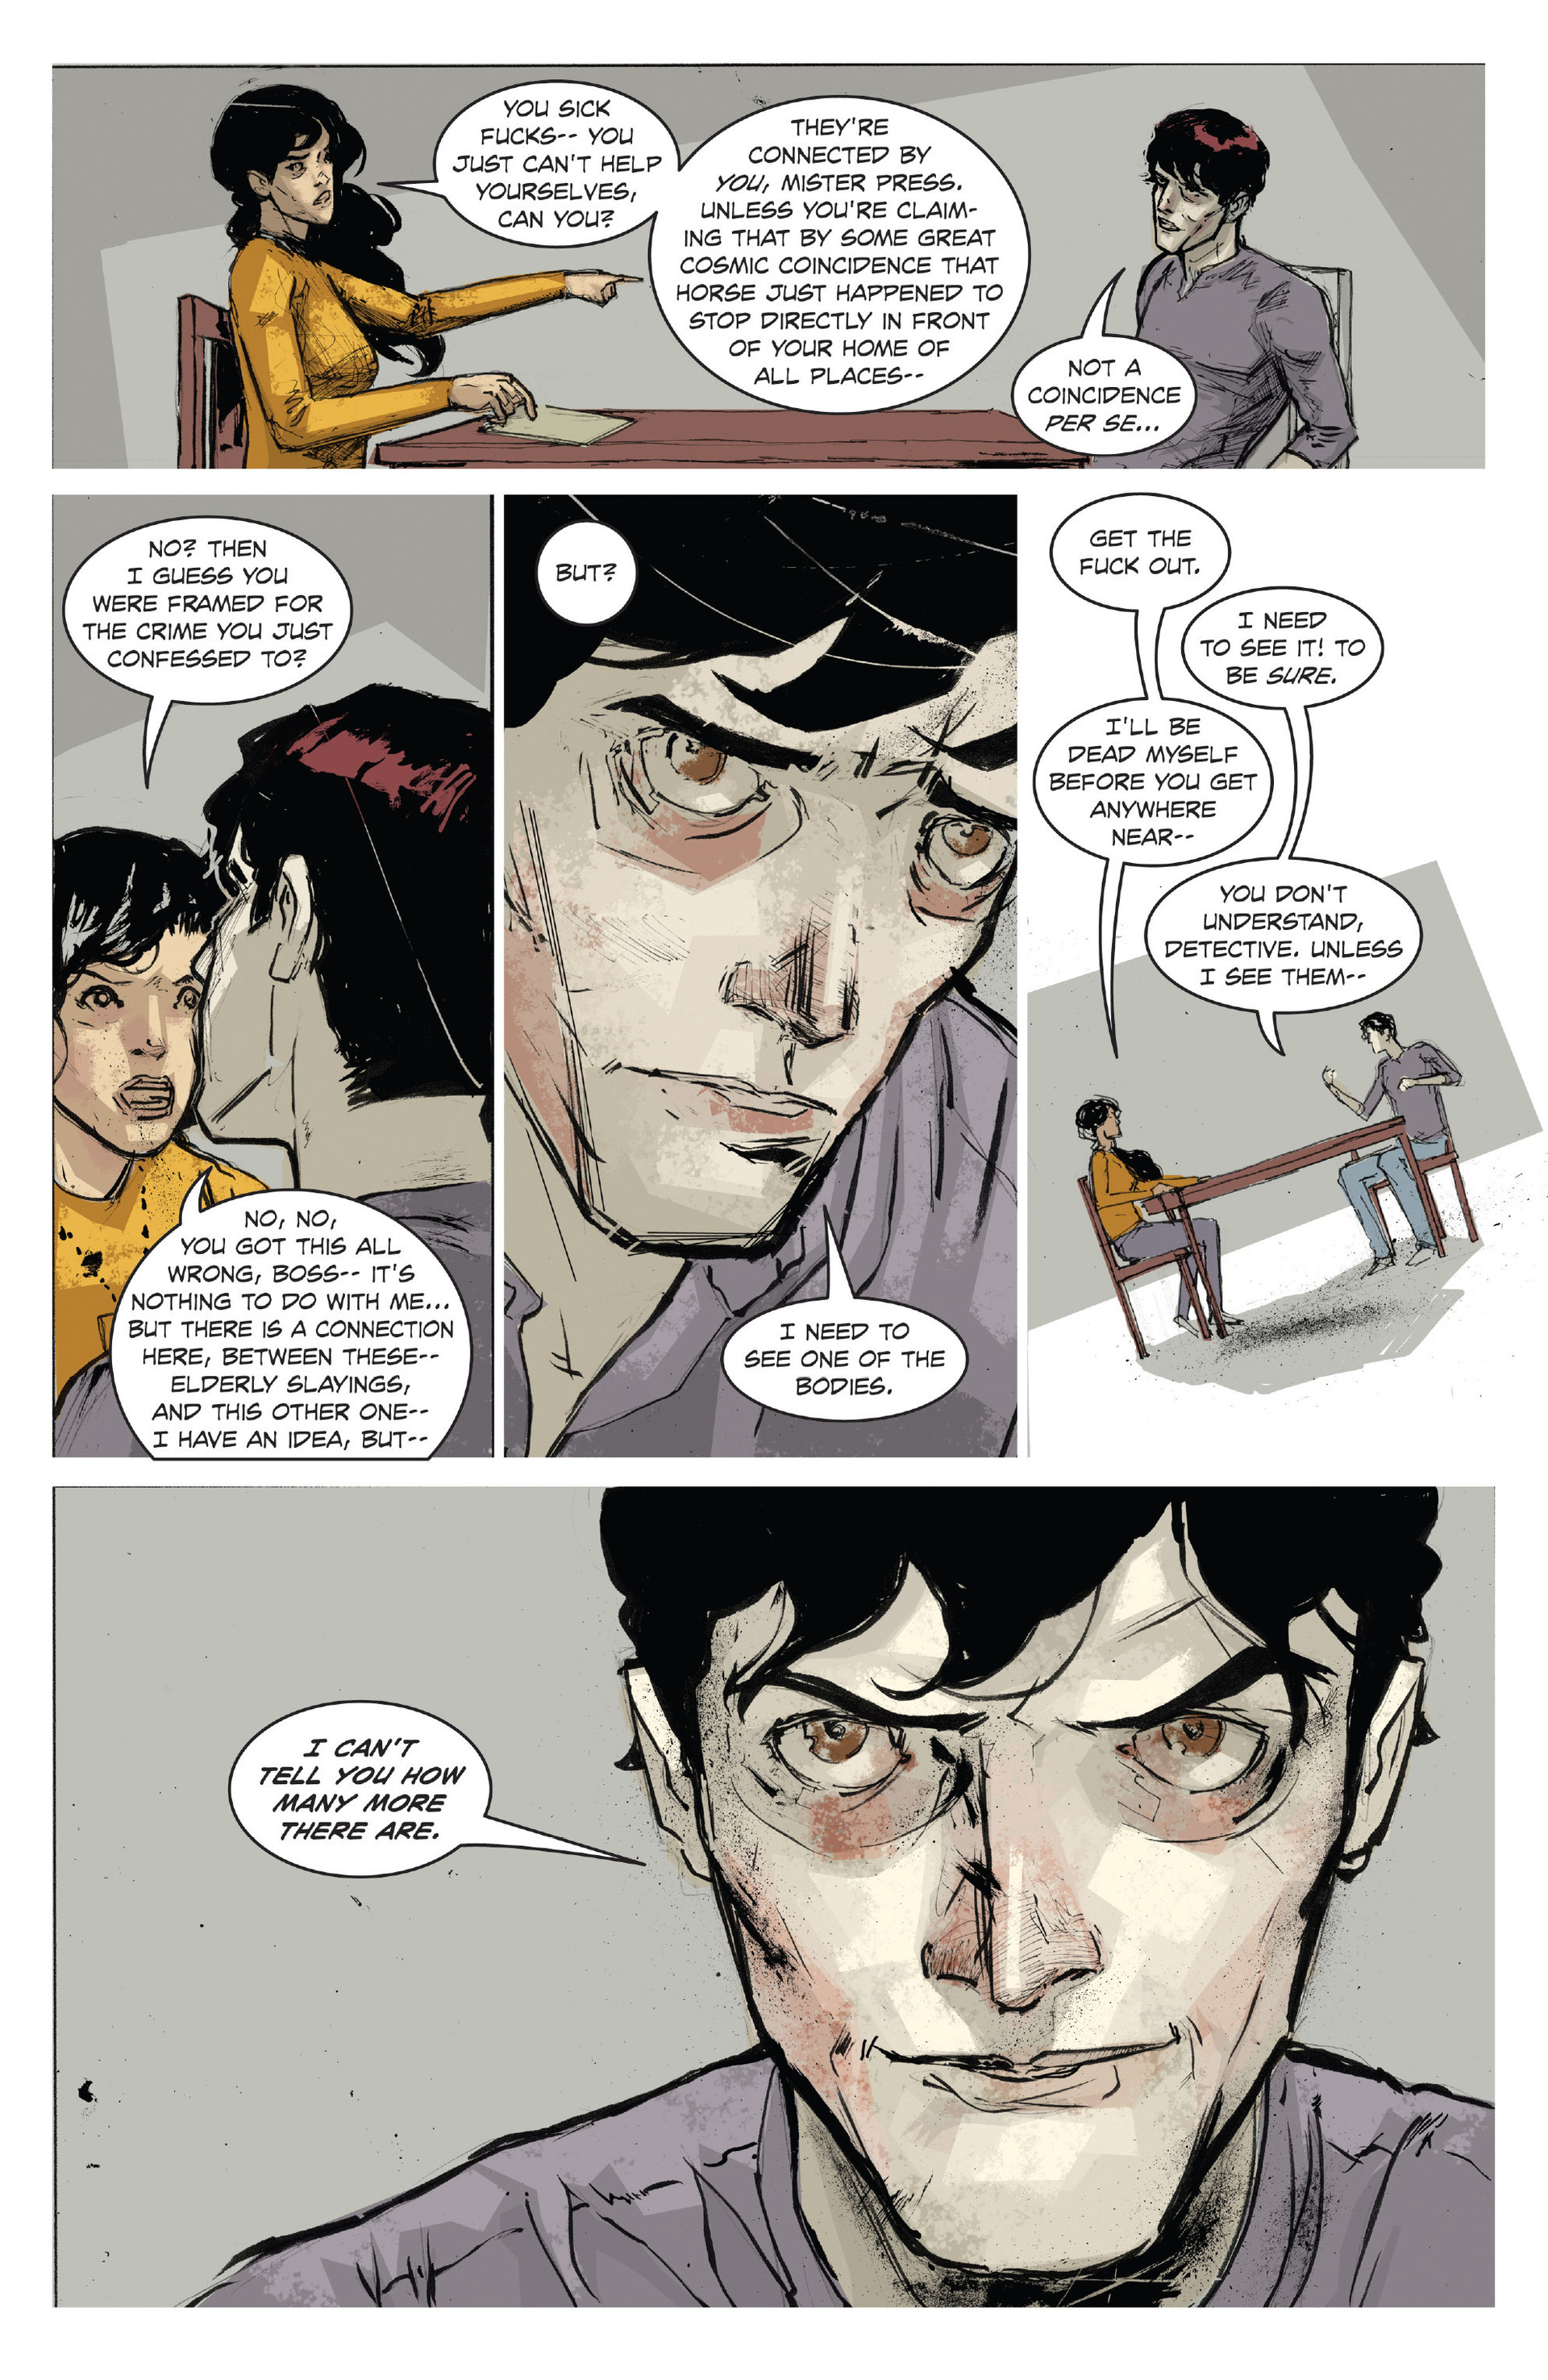 Bedlam Issue 3 | Viewcomic reading comics online for free 2019